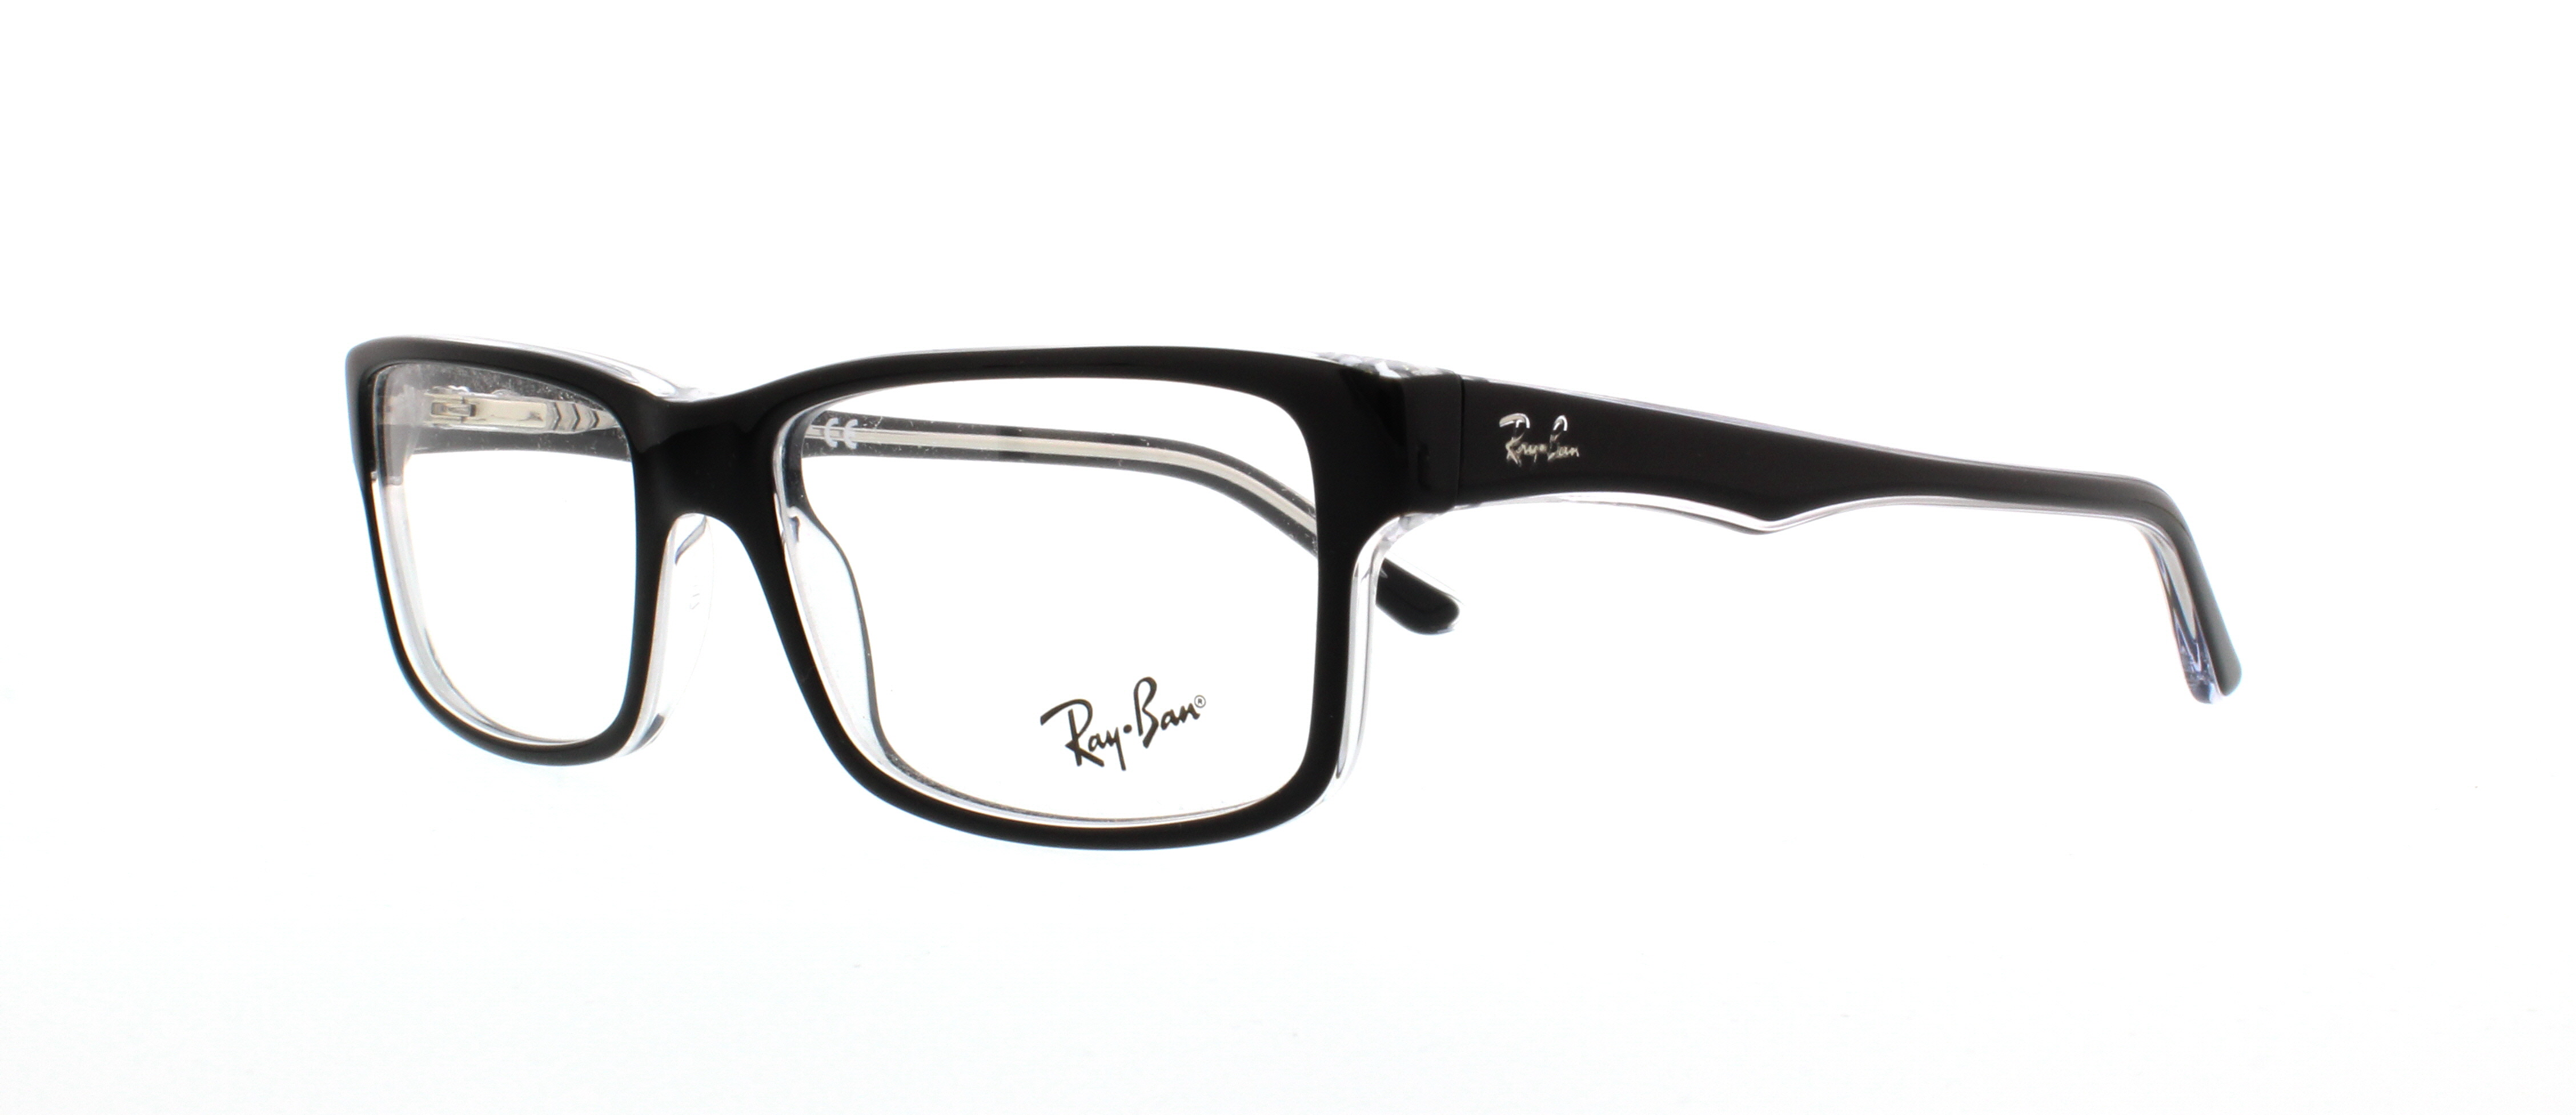 49ae77ace76 Ray Ban Eyeglasses Rx5245 2034 « One More Soul